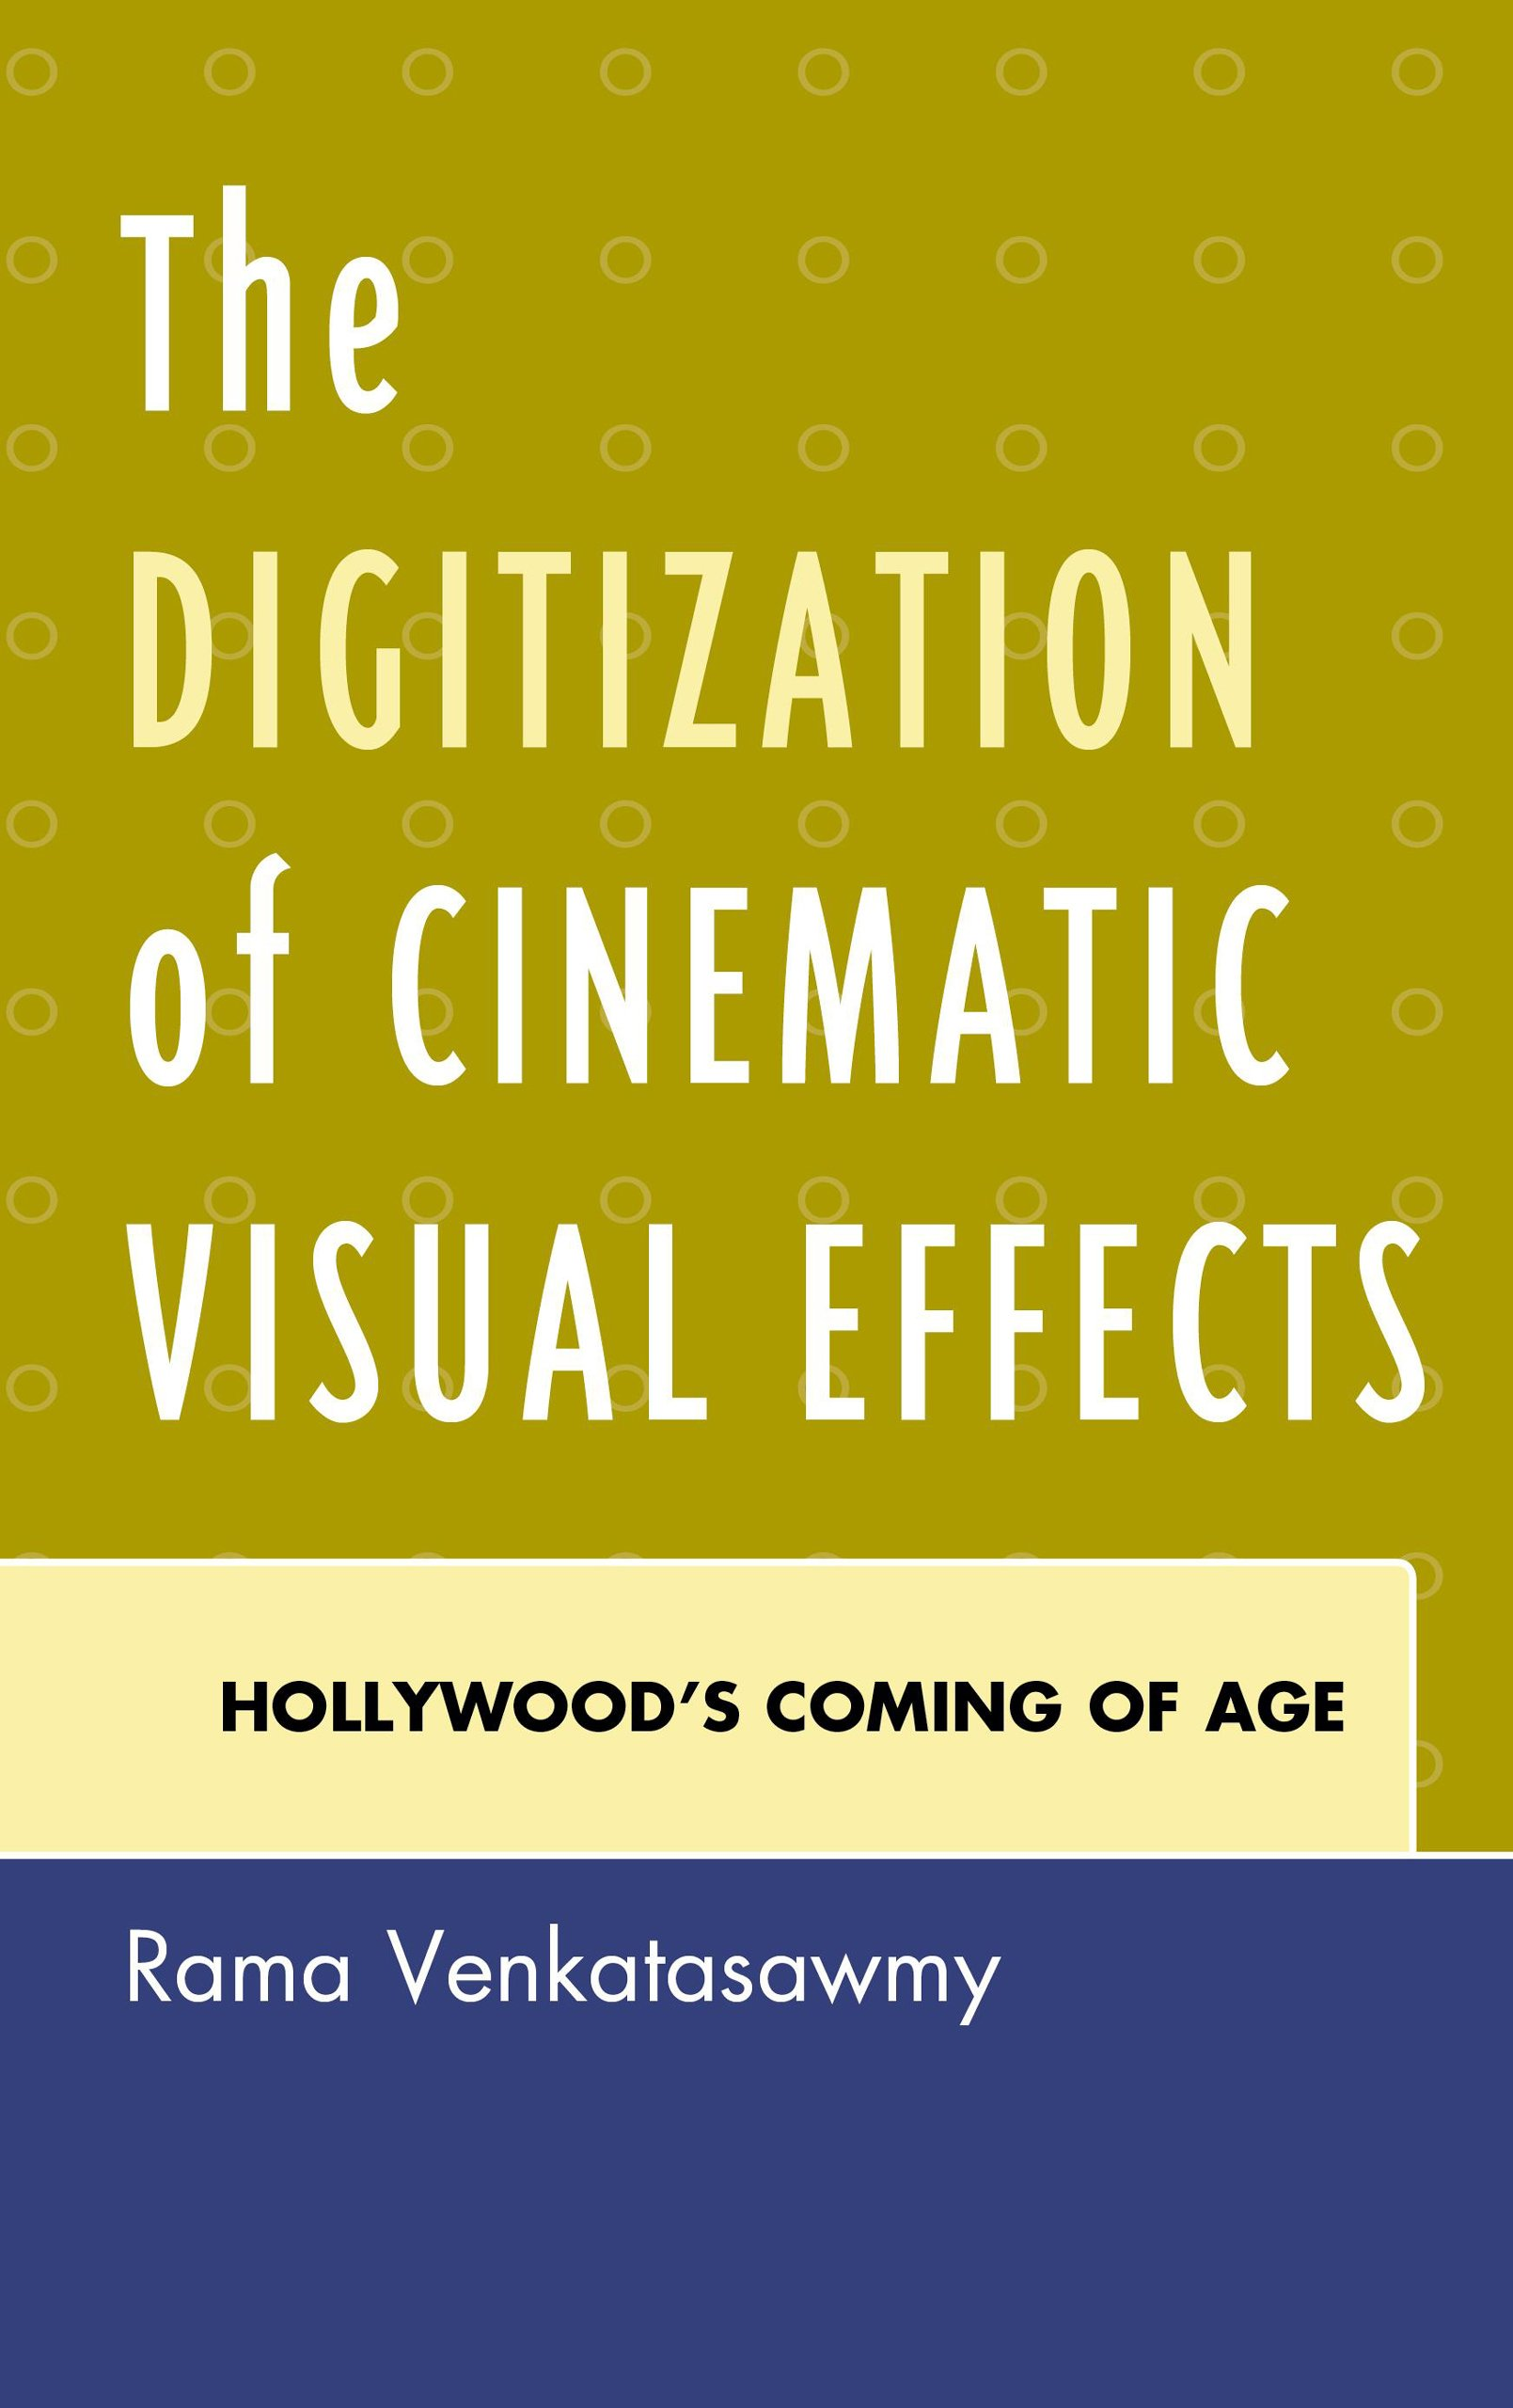 The Digitization of Cinematic Visual Effects: Hollywood's Coming of Age